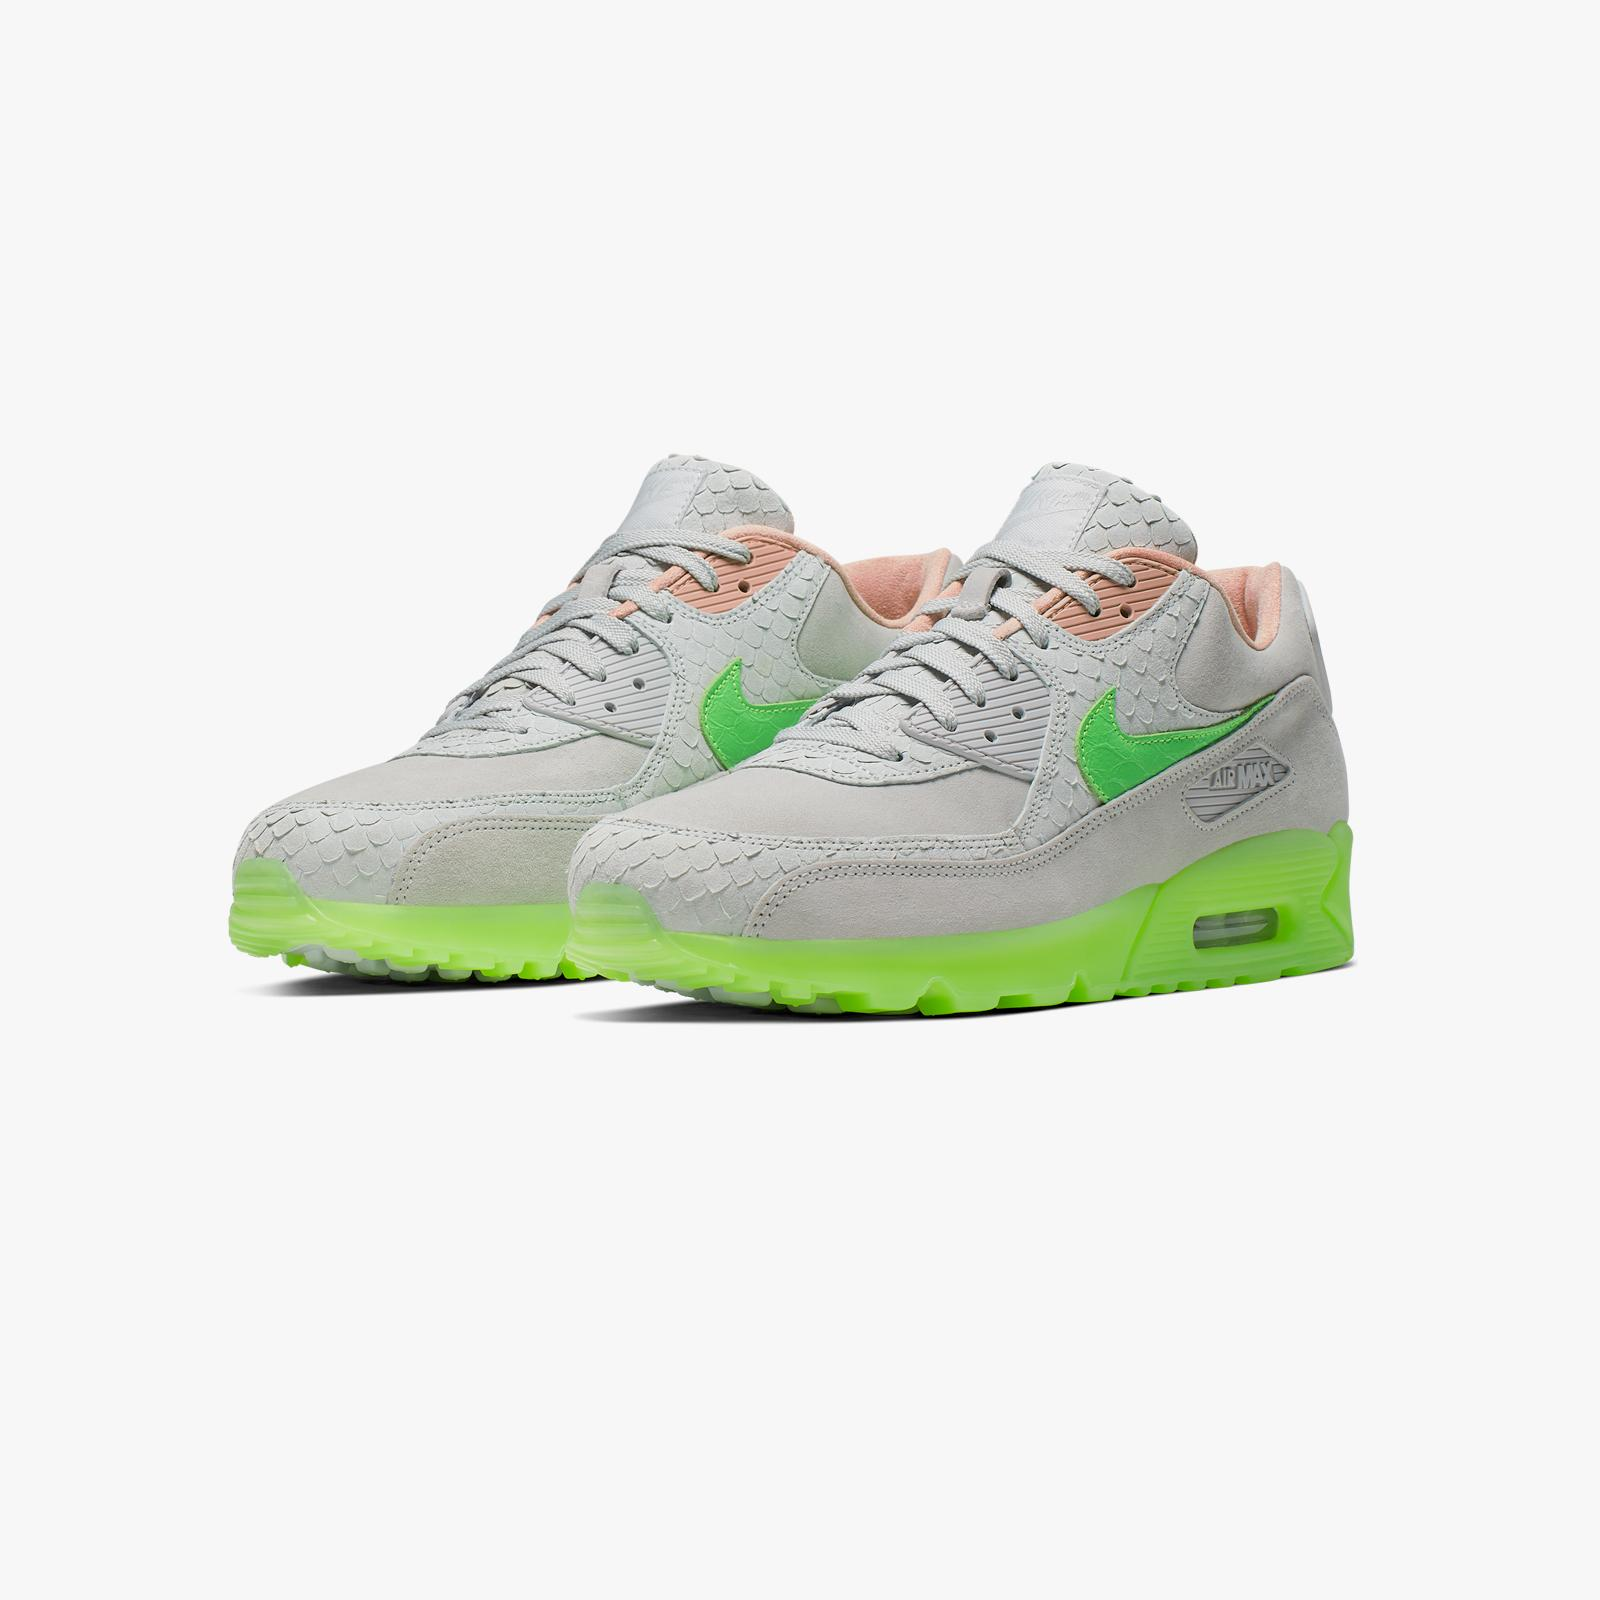 Air Max 90 Premium 'New Species' Nike CQ0786 001 | GOAT